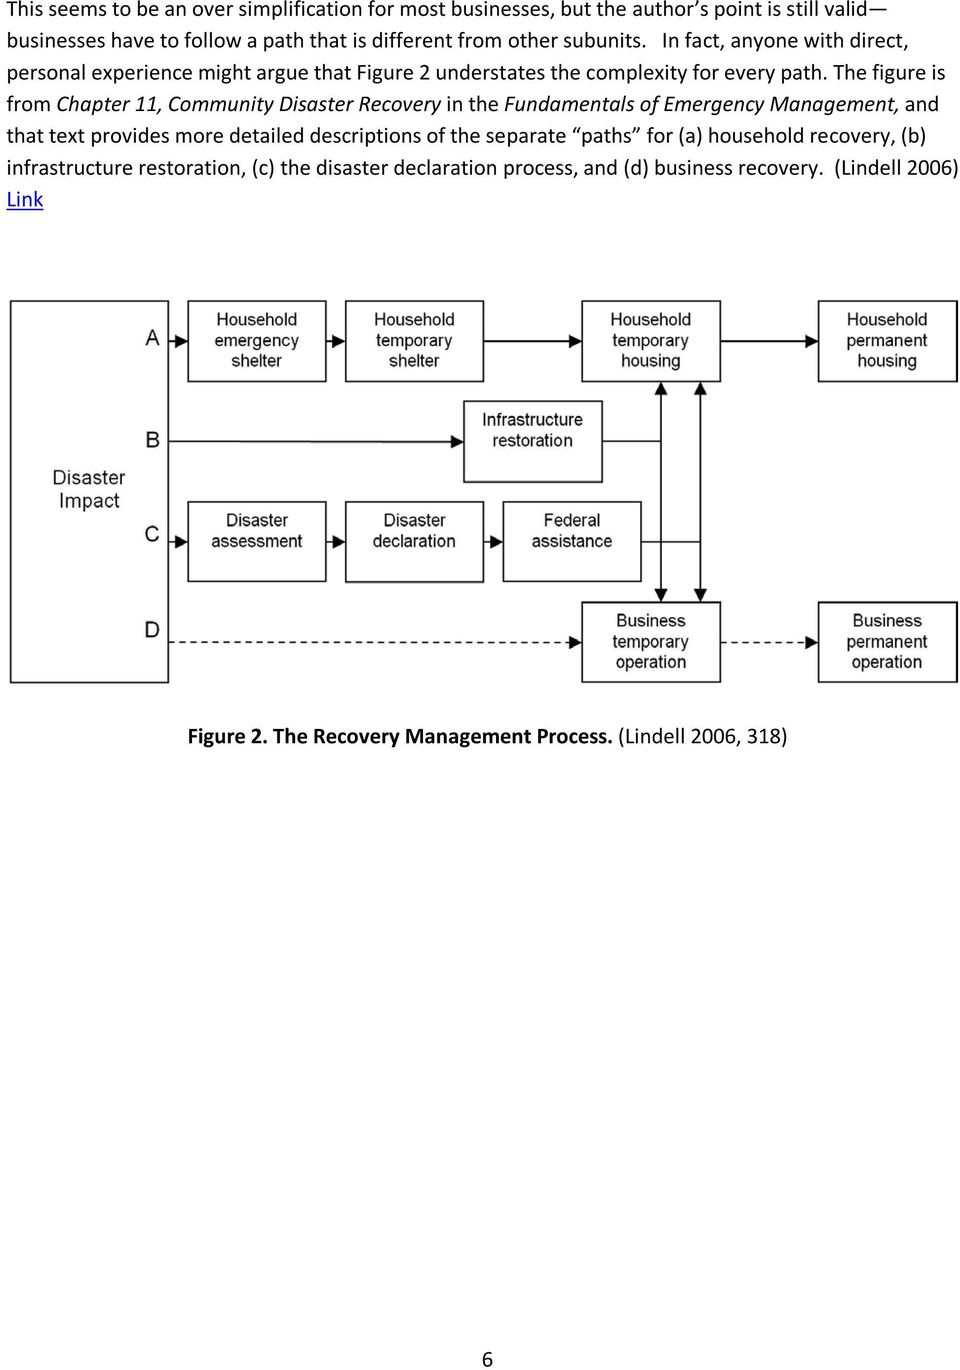 The figure is from Chapter 11, Community Disaster Recovery in the Fundamentals of Emergency Management, and that text provides more detailed descriptions of the